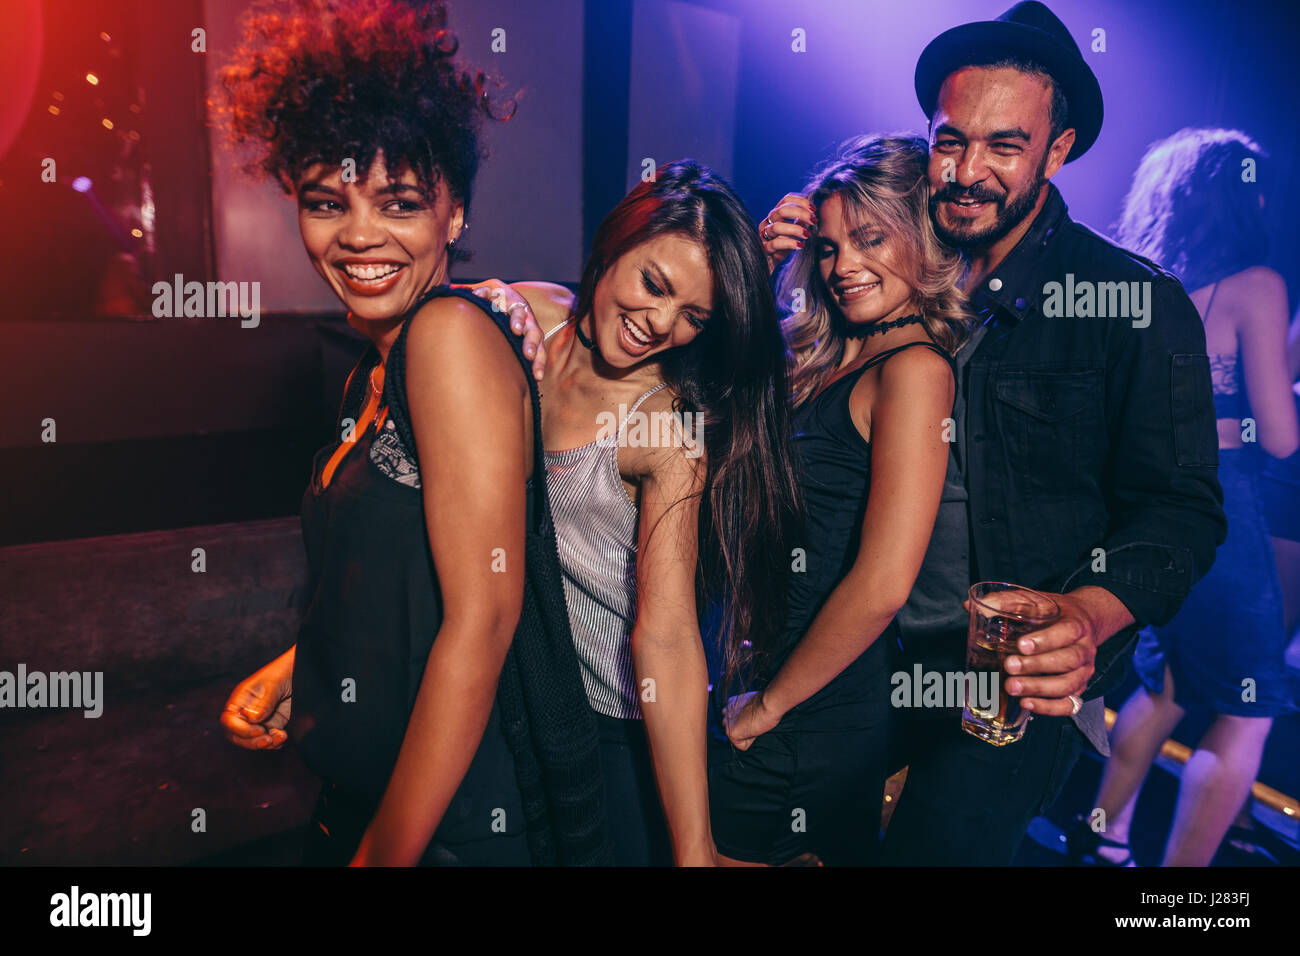 Young man and woman enjoying a party at nightclub. Group of friends dancing at disco club. - Stock Image